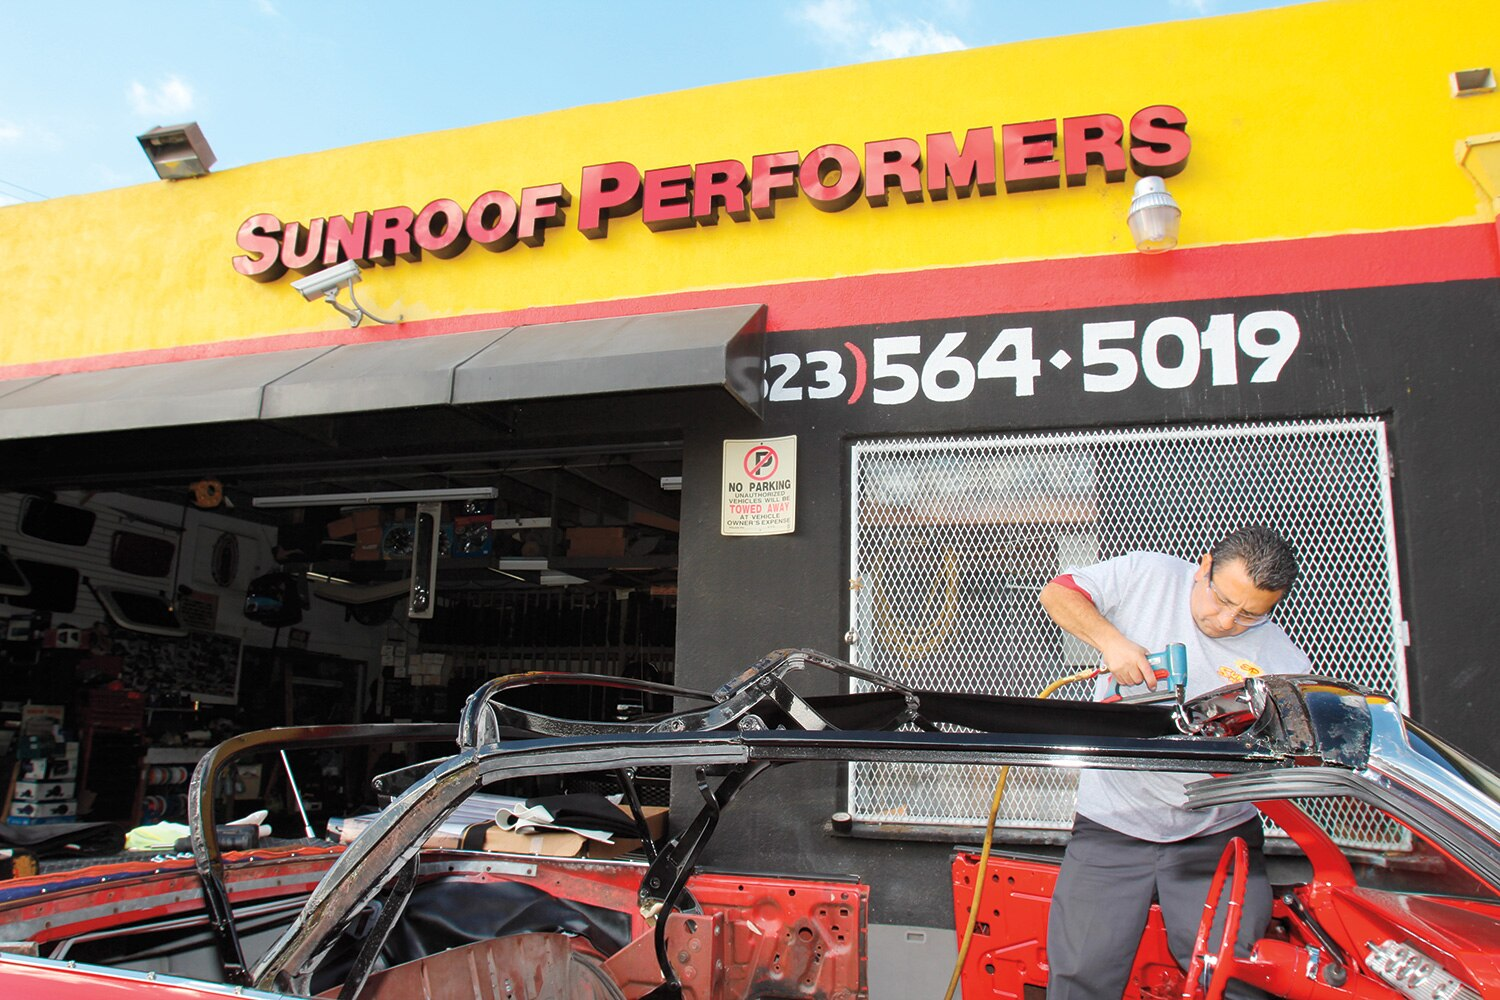 cars-inc-convertible-top-install-sunroof-performers-promo